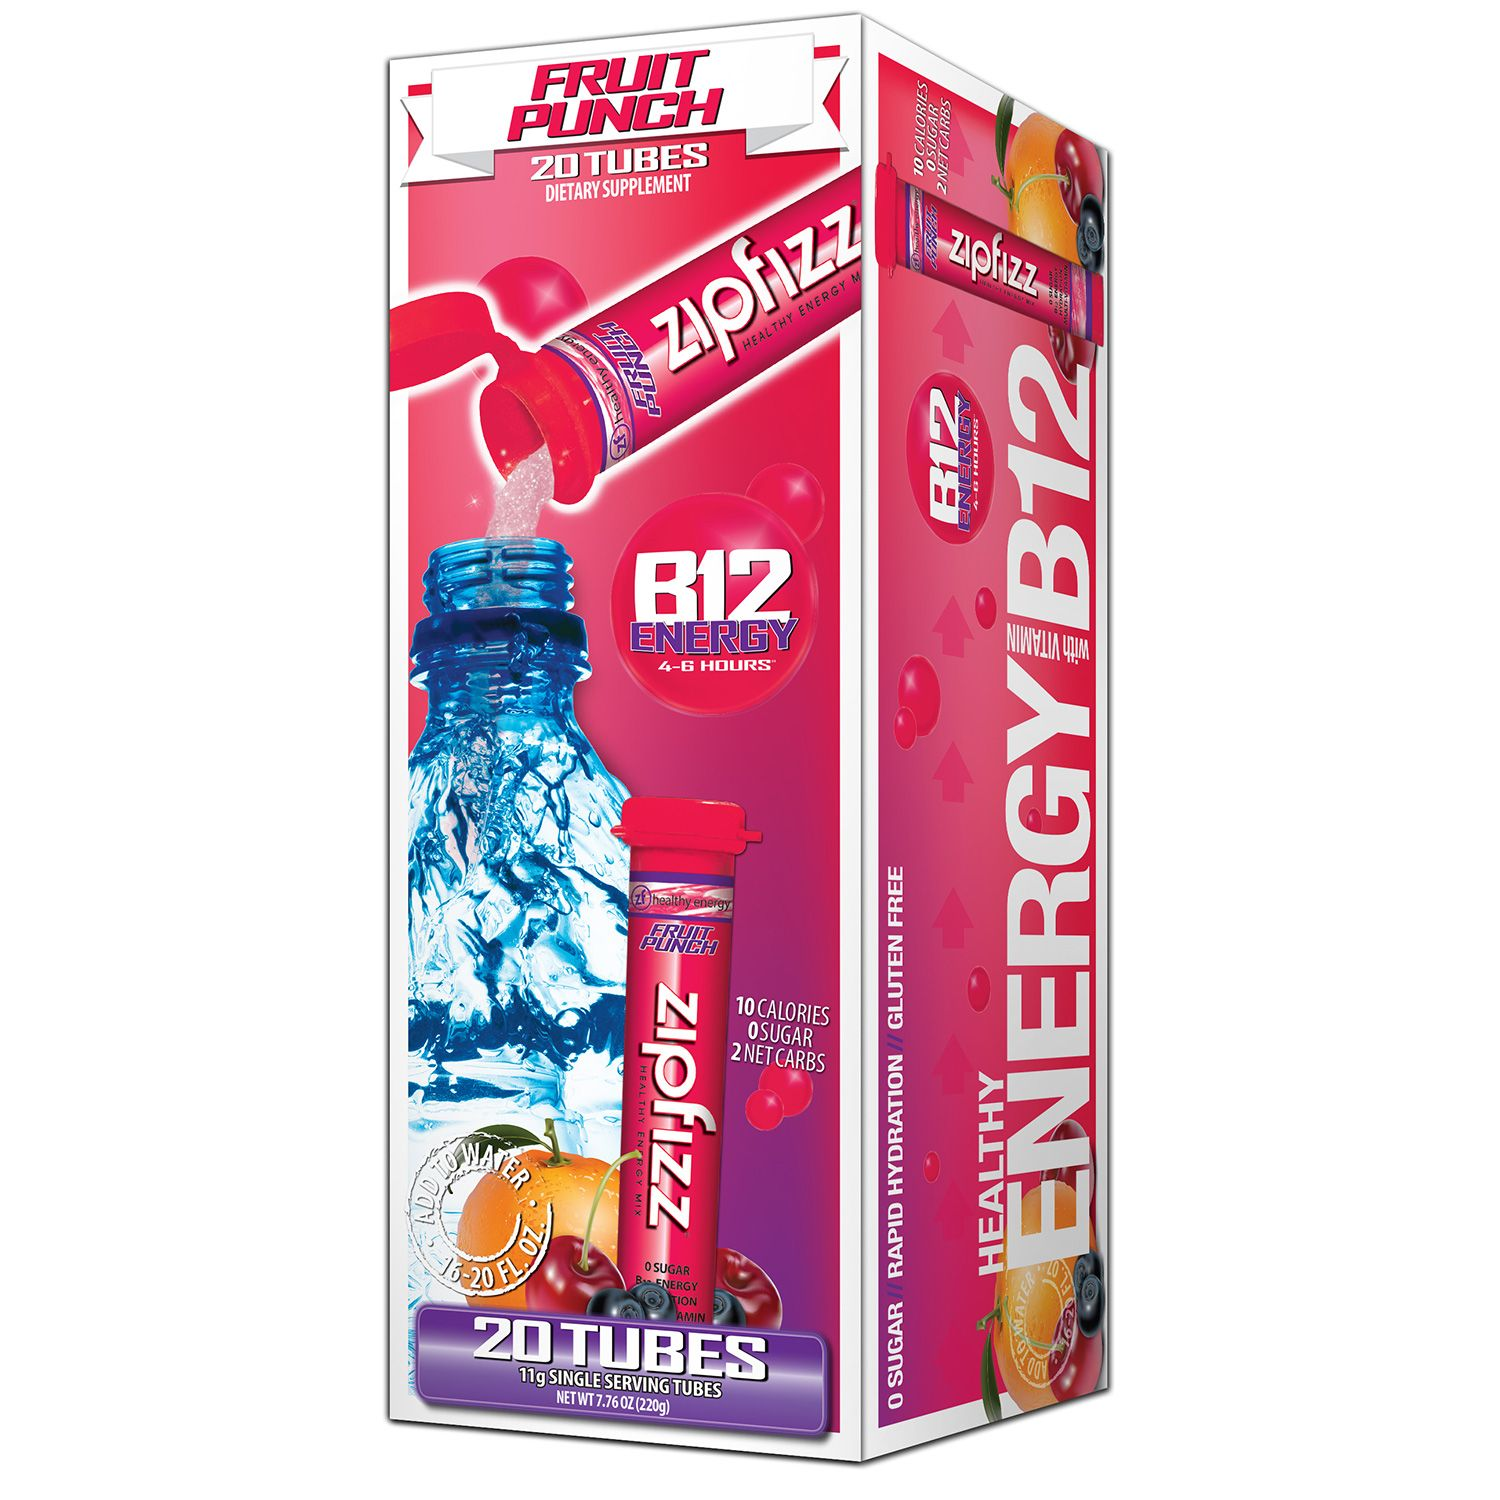 Zipfizz Fruit Punch Flavored Drink Packets (20 ct.)